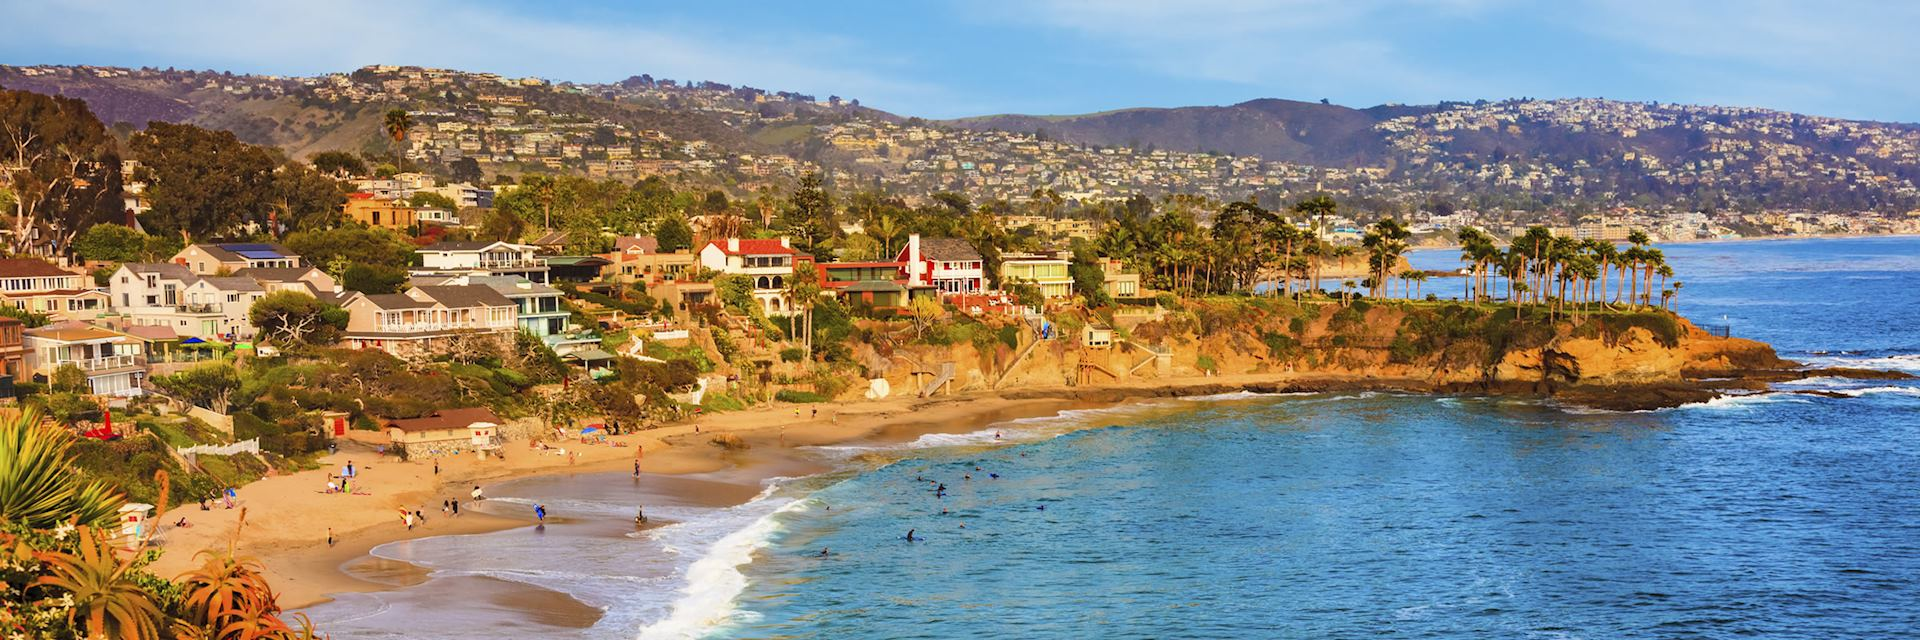 Laguna Beach coastline, California